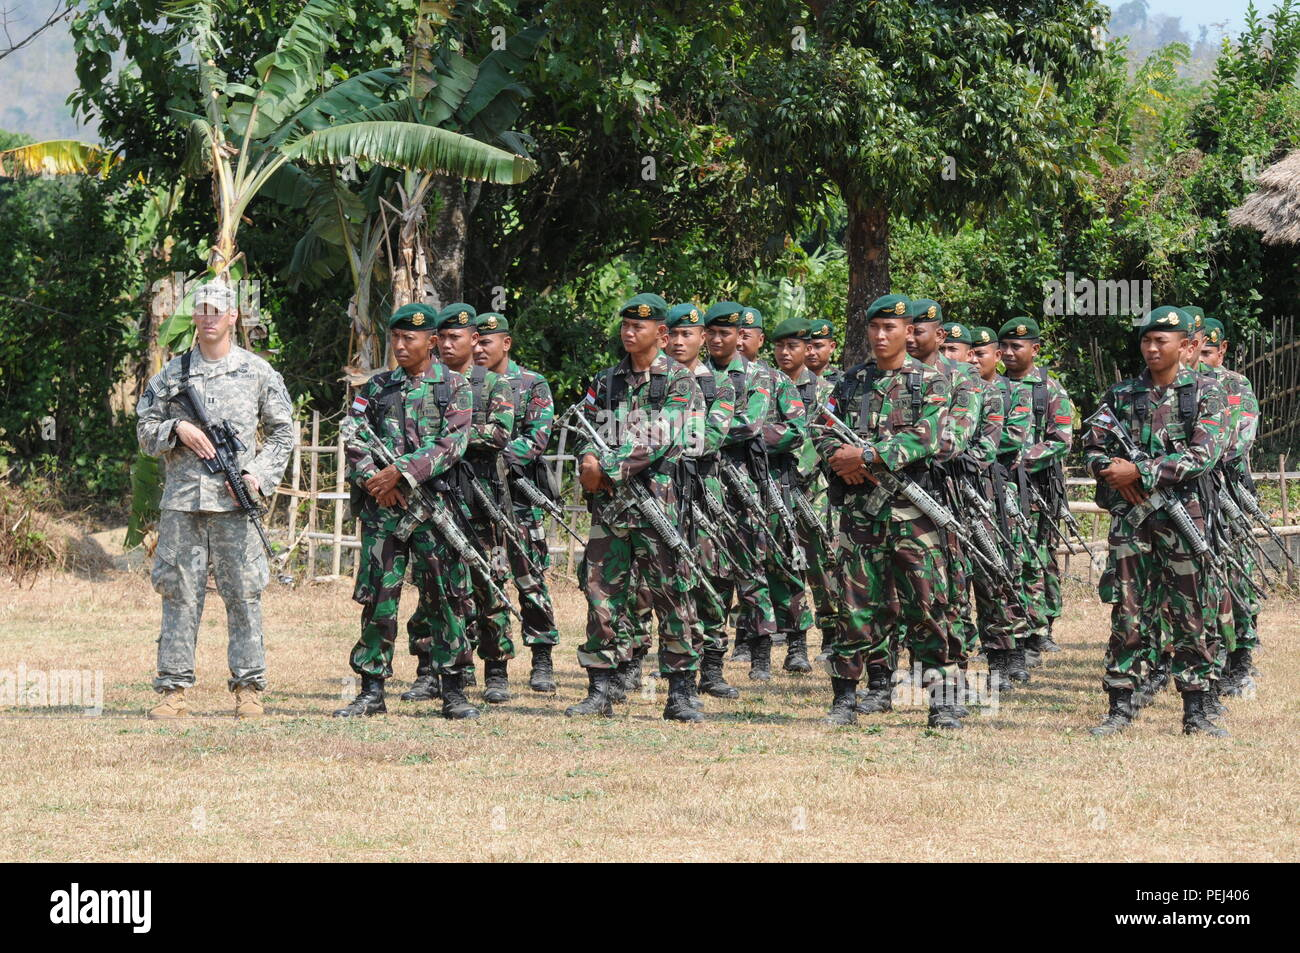 Rd Brigade Combat Team Th Infantry Division Stands With Sol Rs Of The St Kostrad Infantry Division Tentara Nasional Indonesia Angkatan Darat